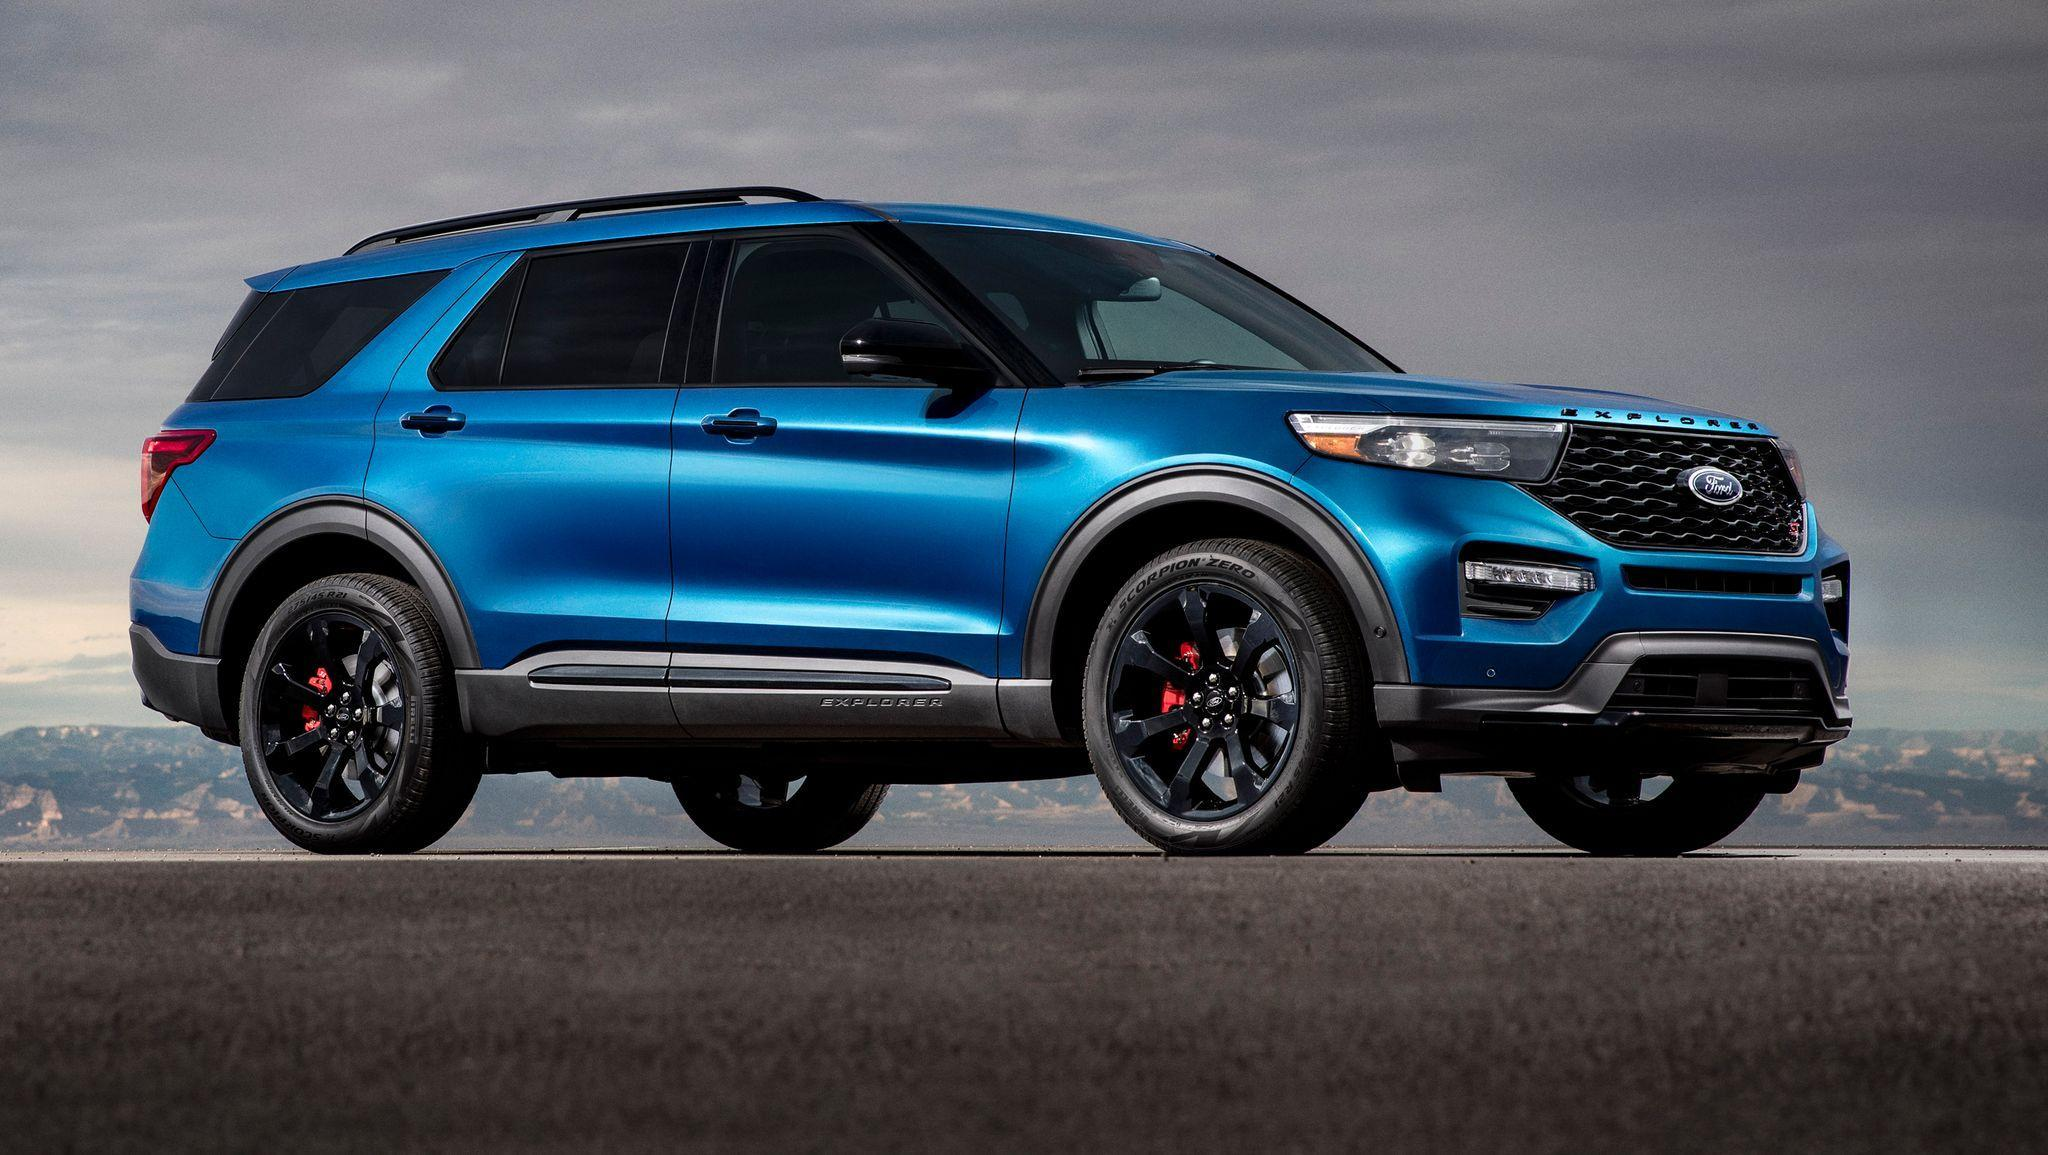 Ford 2021 Explorer image